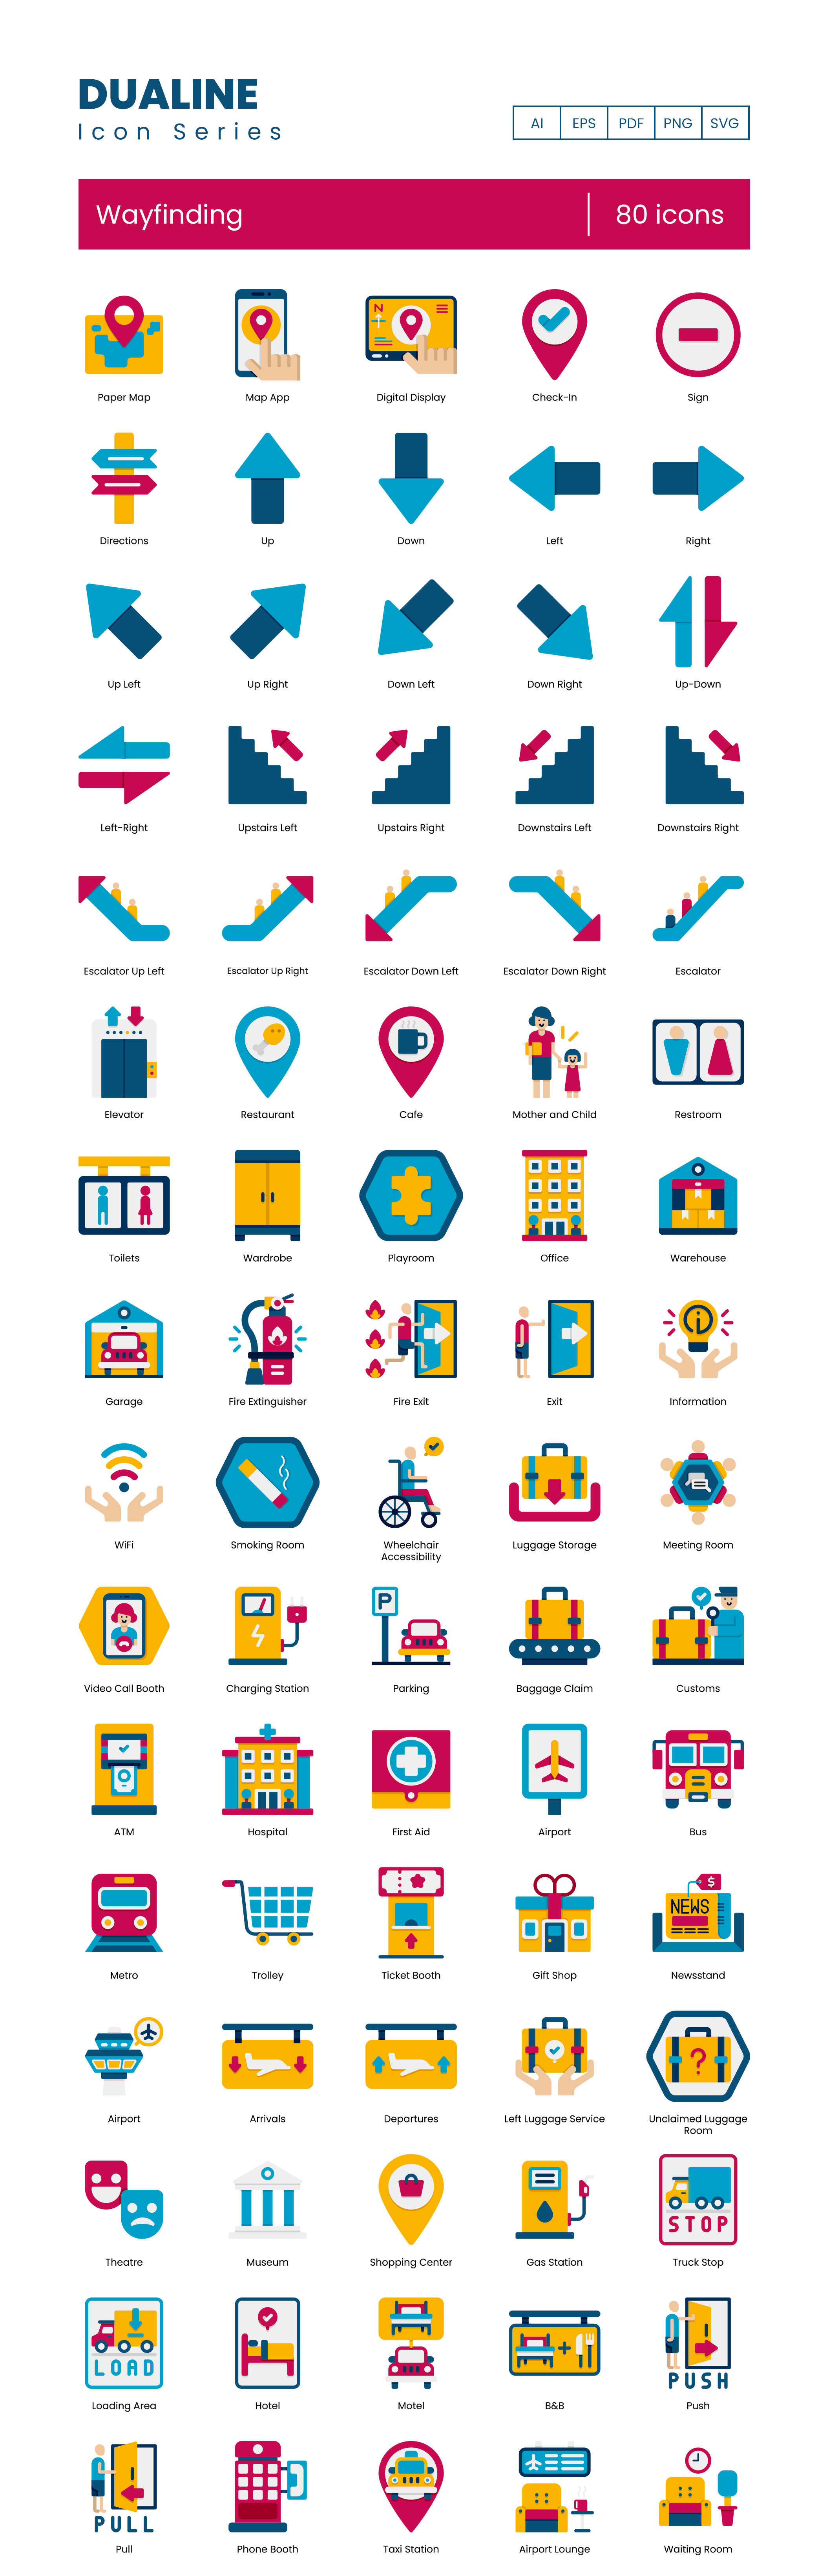 Wayfinding Vector Icons Preview Image